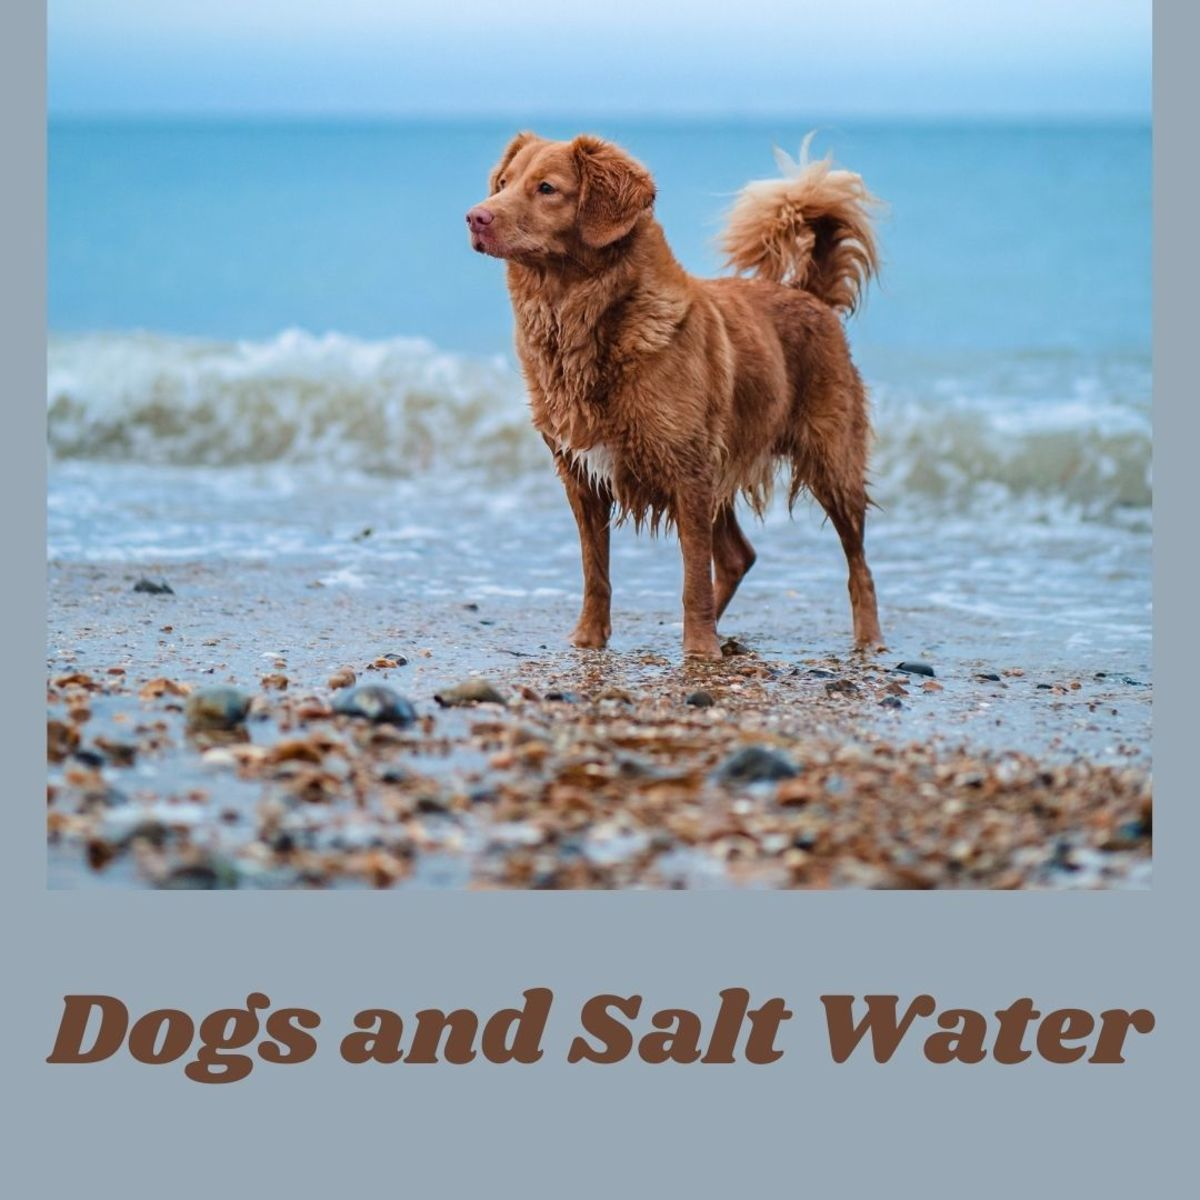 When dogs drink salt water, they can get beach diarrhea.